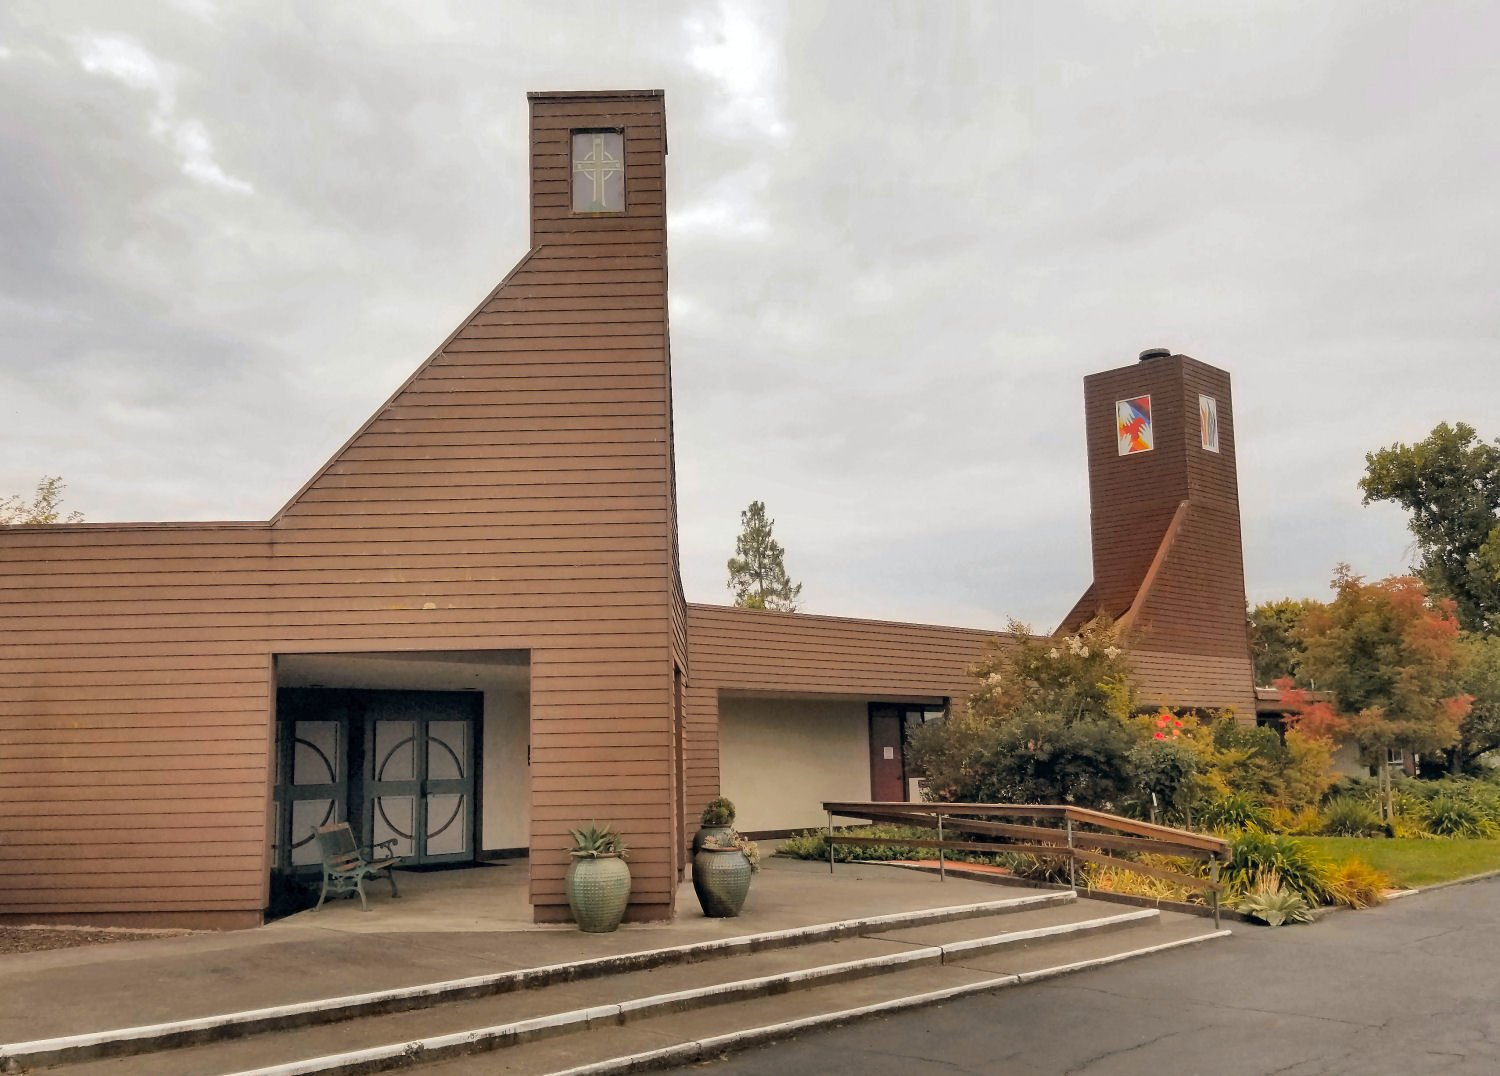 Santa Rosa – Christ Church United Methodist